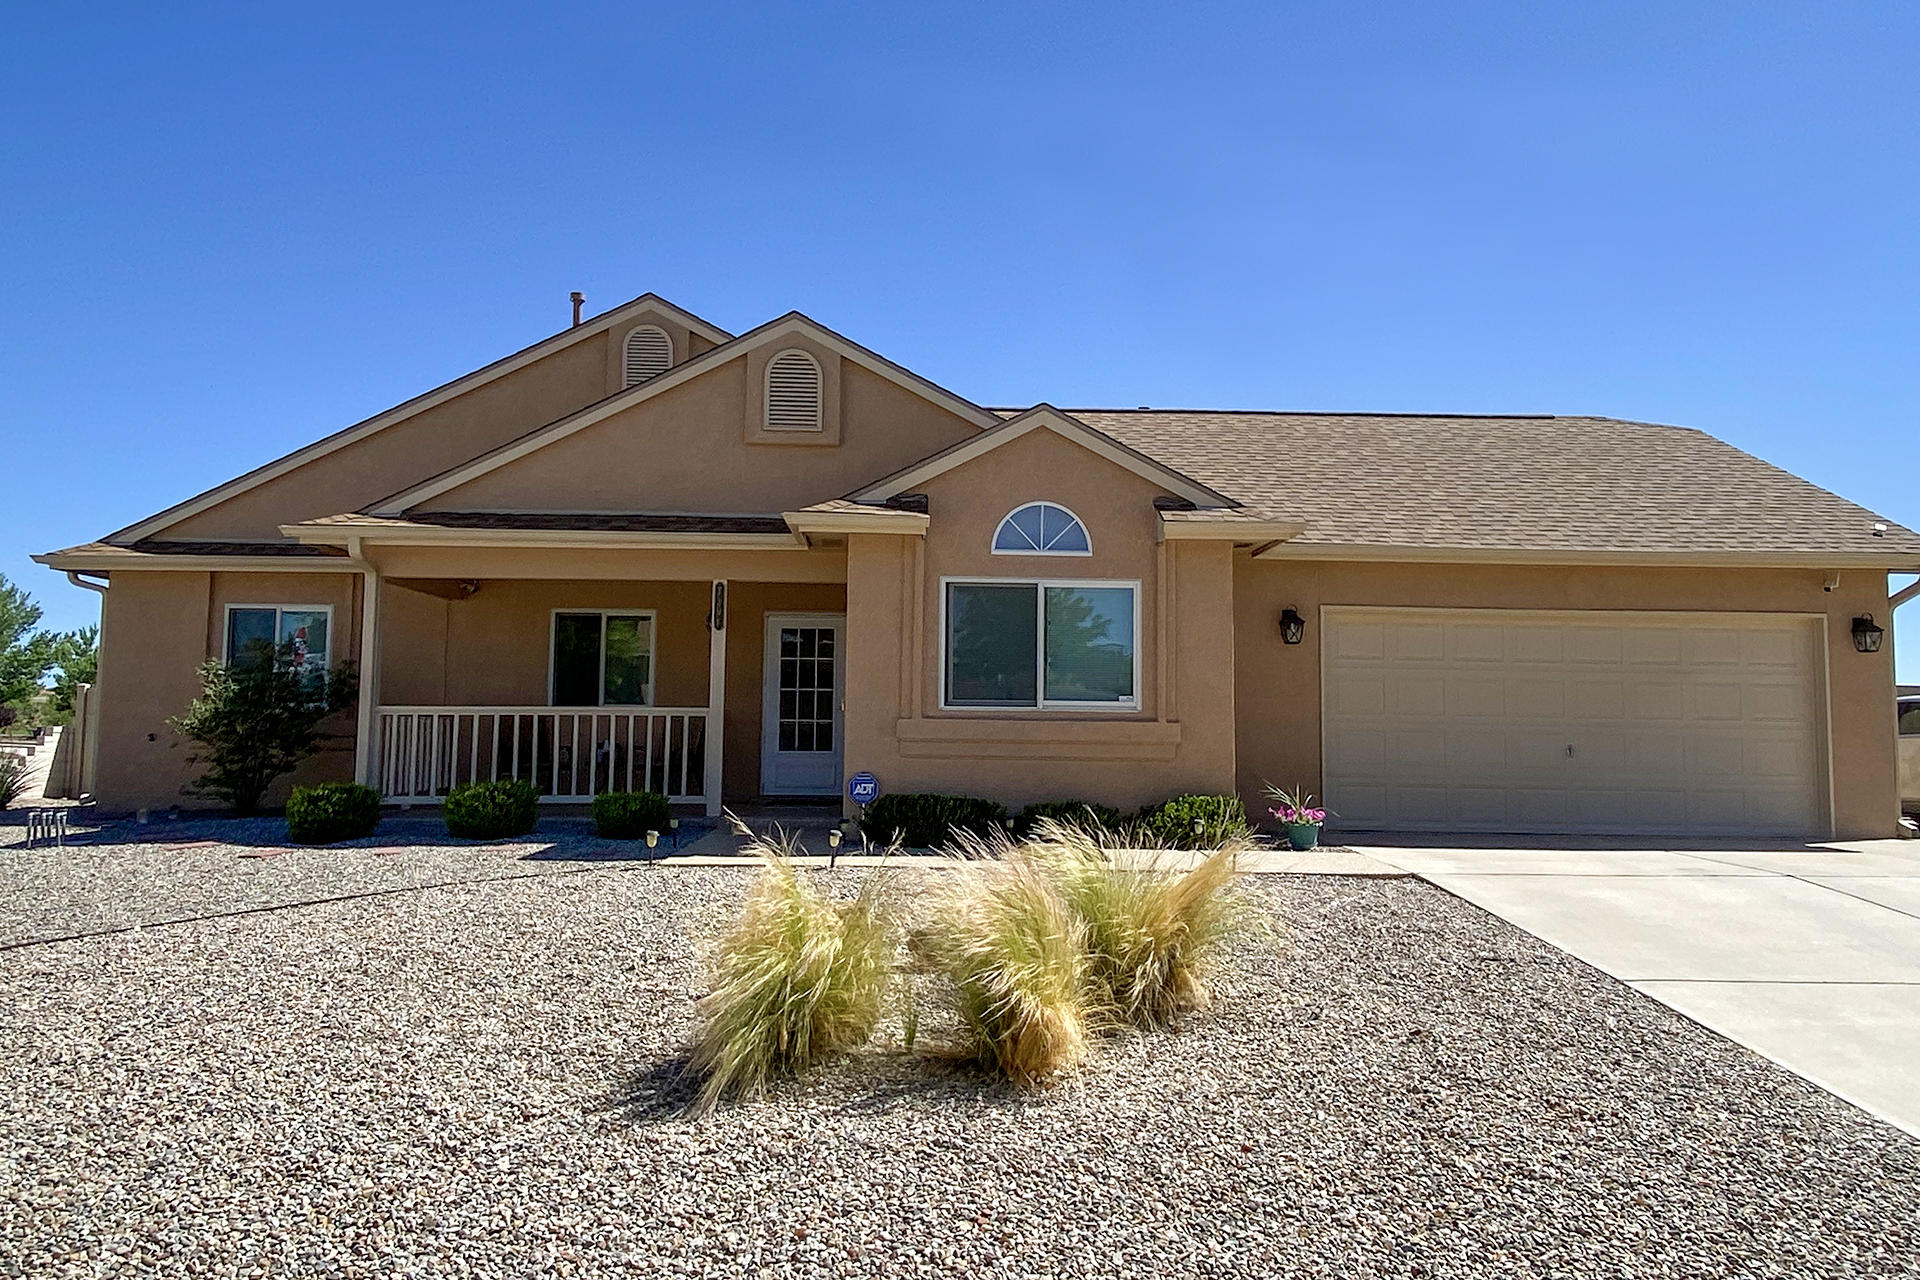 7301 Mackenzie Drive NE, Rio Rancho, NM 87144 - Rio Rancho, NM real estate listing